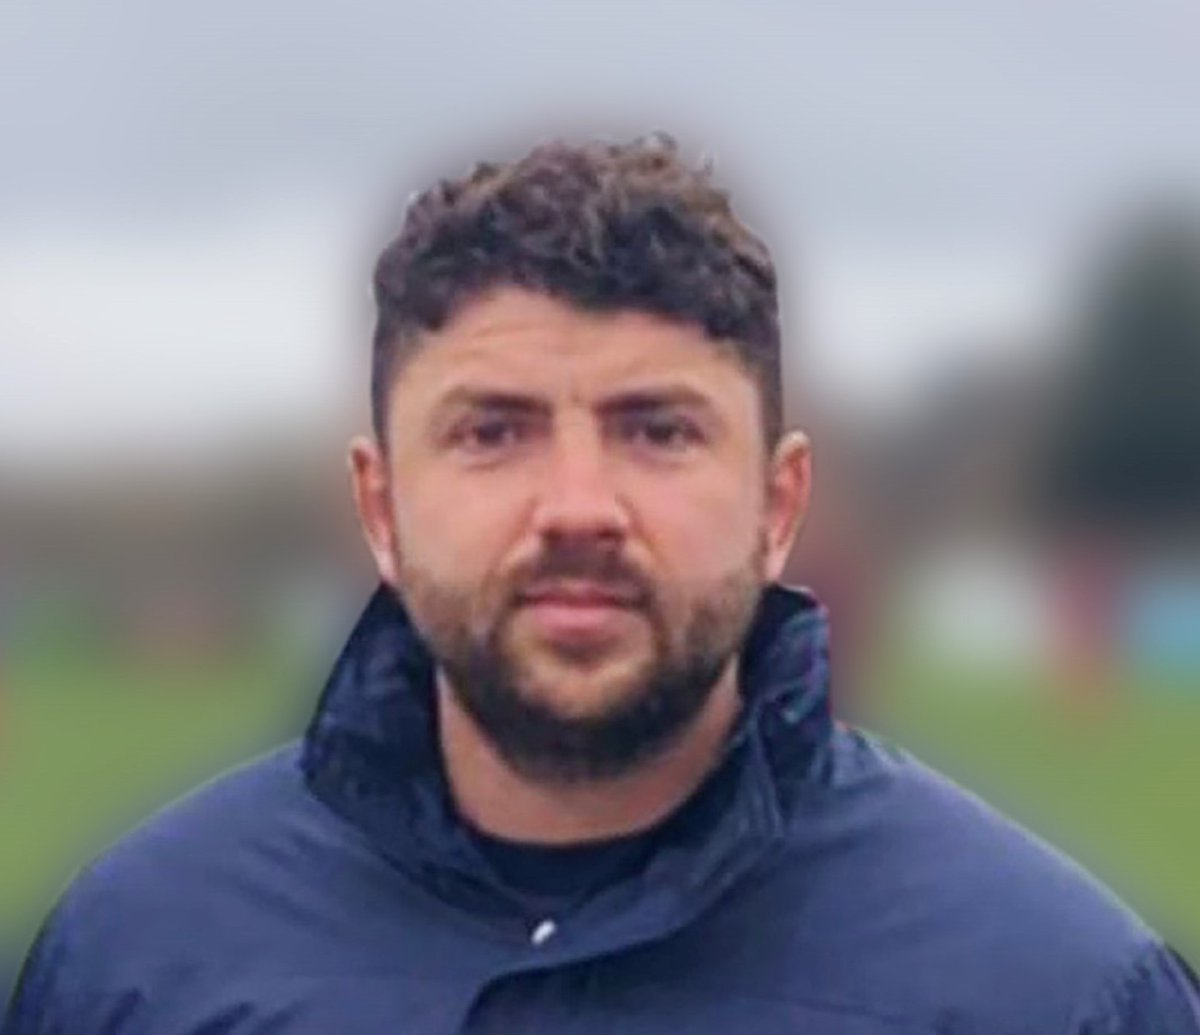 We are pleased to announce a new Reserve Team for 2020/21. We welcome Flackwell Heath local, Luke Belson as Manager and Coaching staff of Mark Driscoll and Josh Briant. We will get the 1st, Reserves and Youth teams training together as soon as Government and FA Guidelines allow.